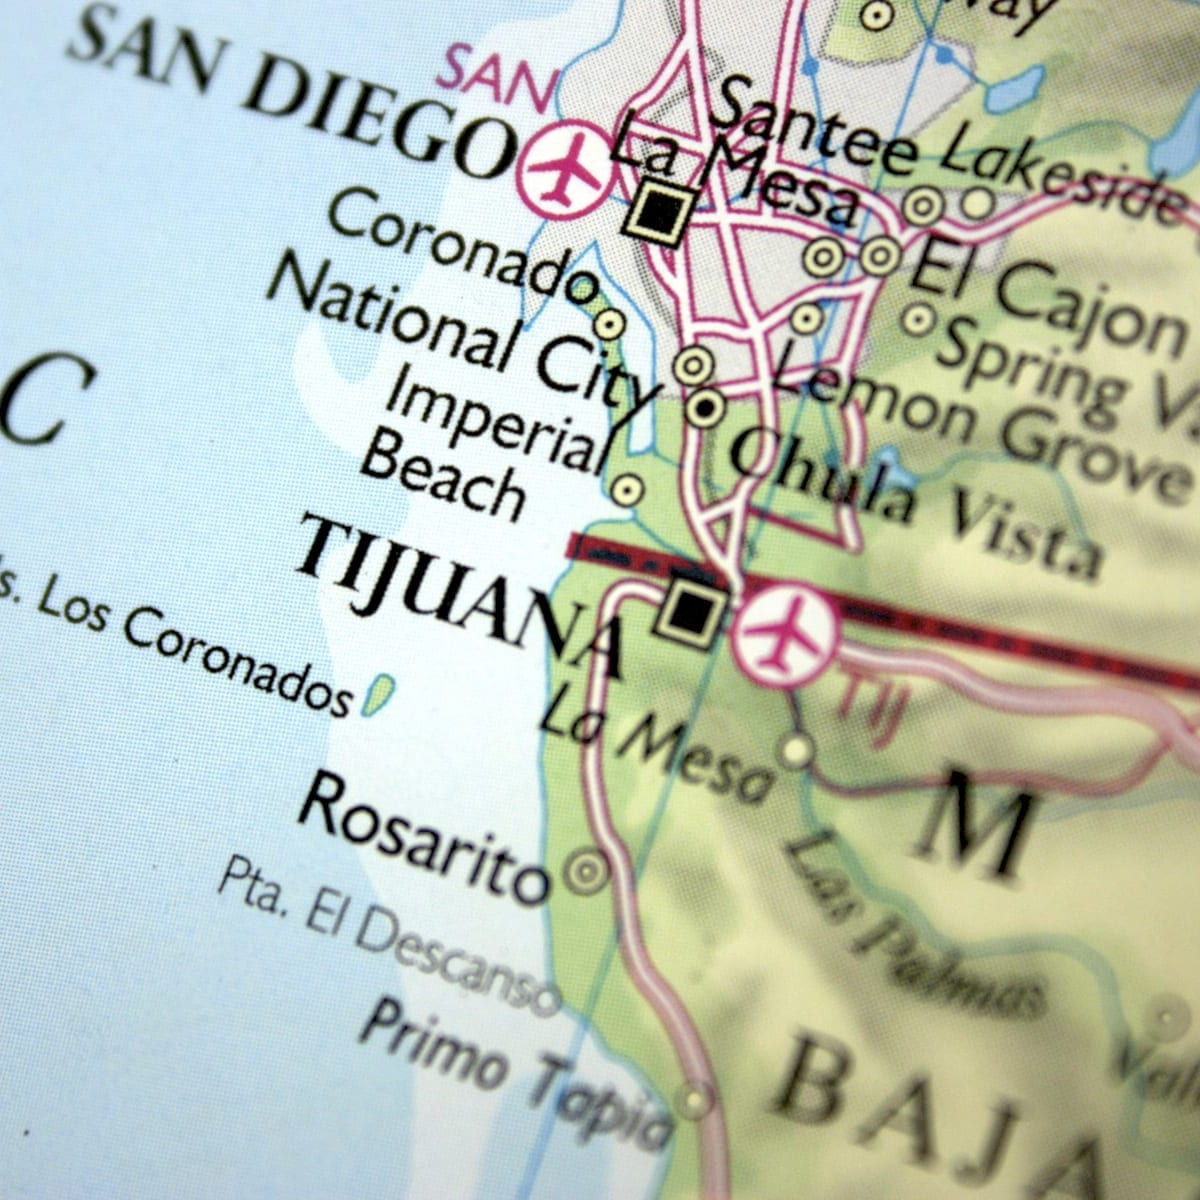 Tijuana Mexico Map of Border from San Diego to Tijuana Baja California